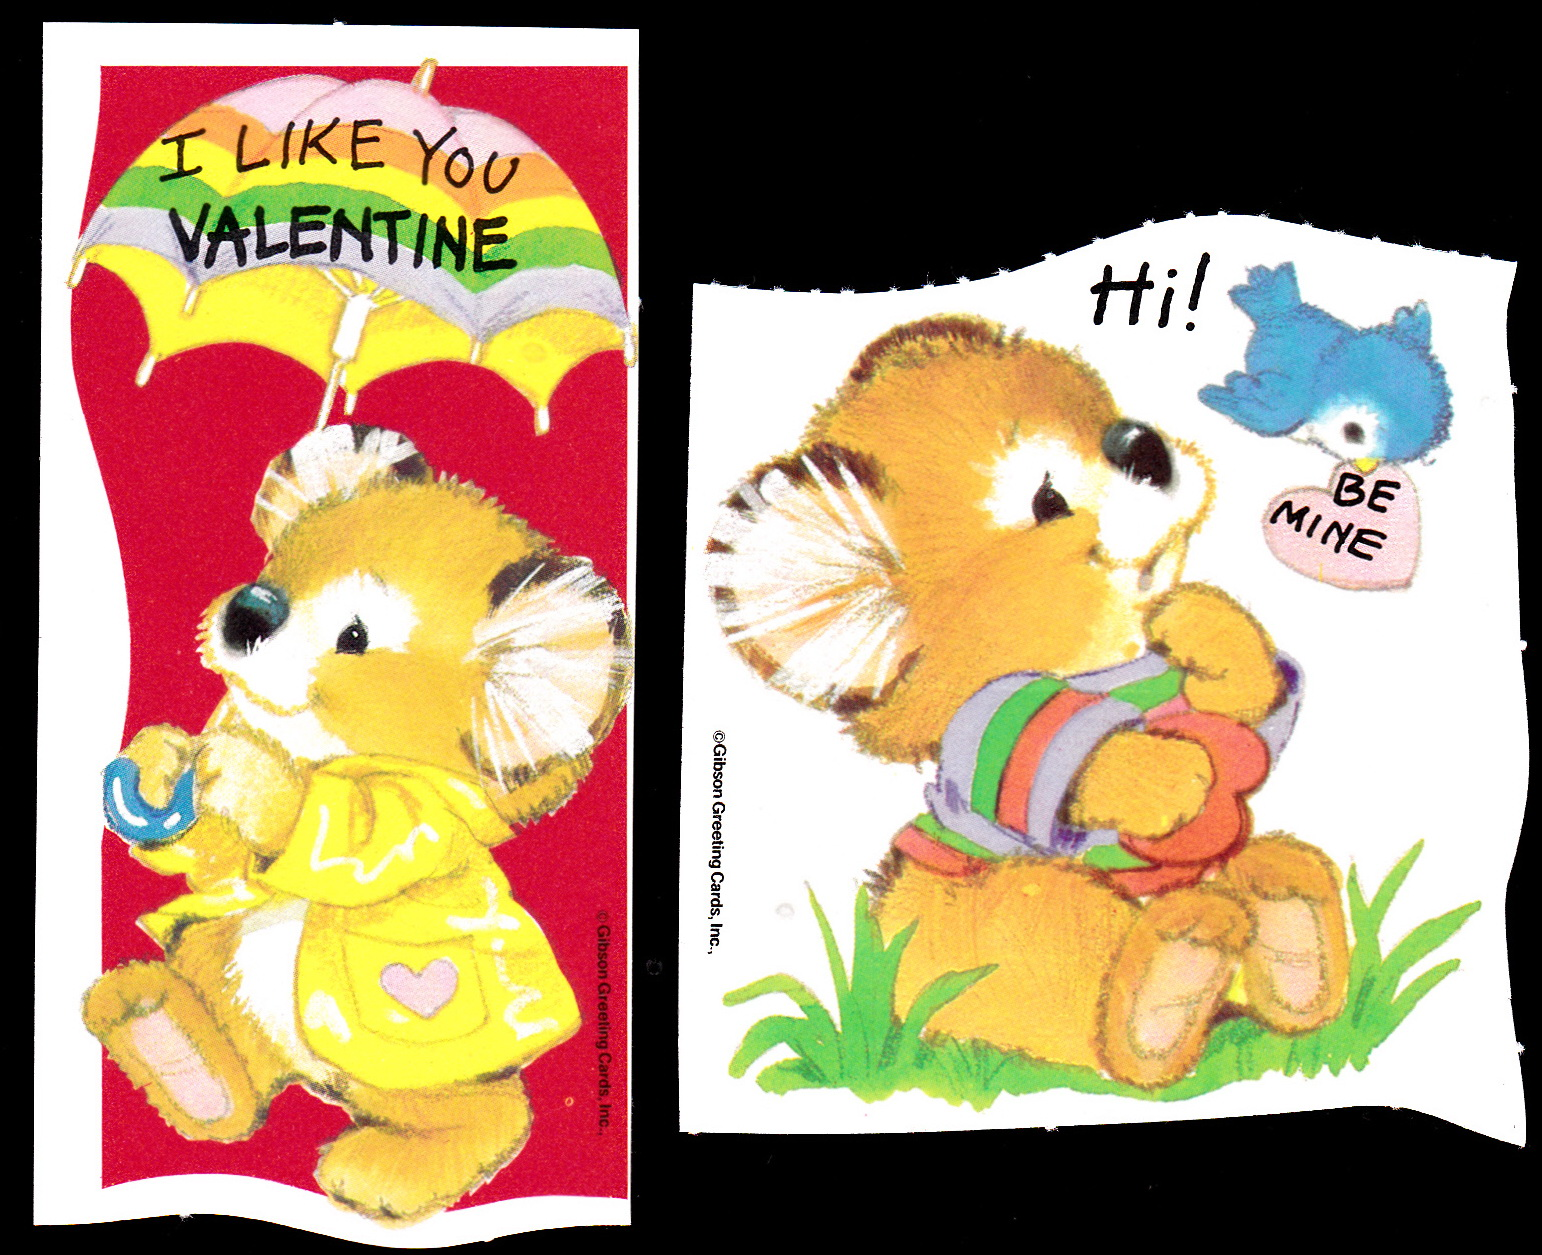 Vintage recycling 14 in 14 fourteen days of vintage valentines gibson greeting cards inc m4hsunfo